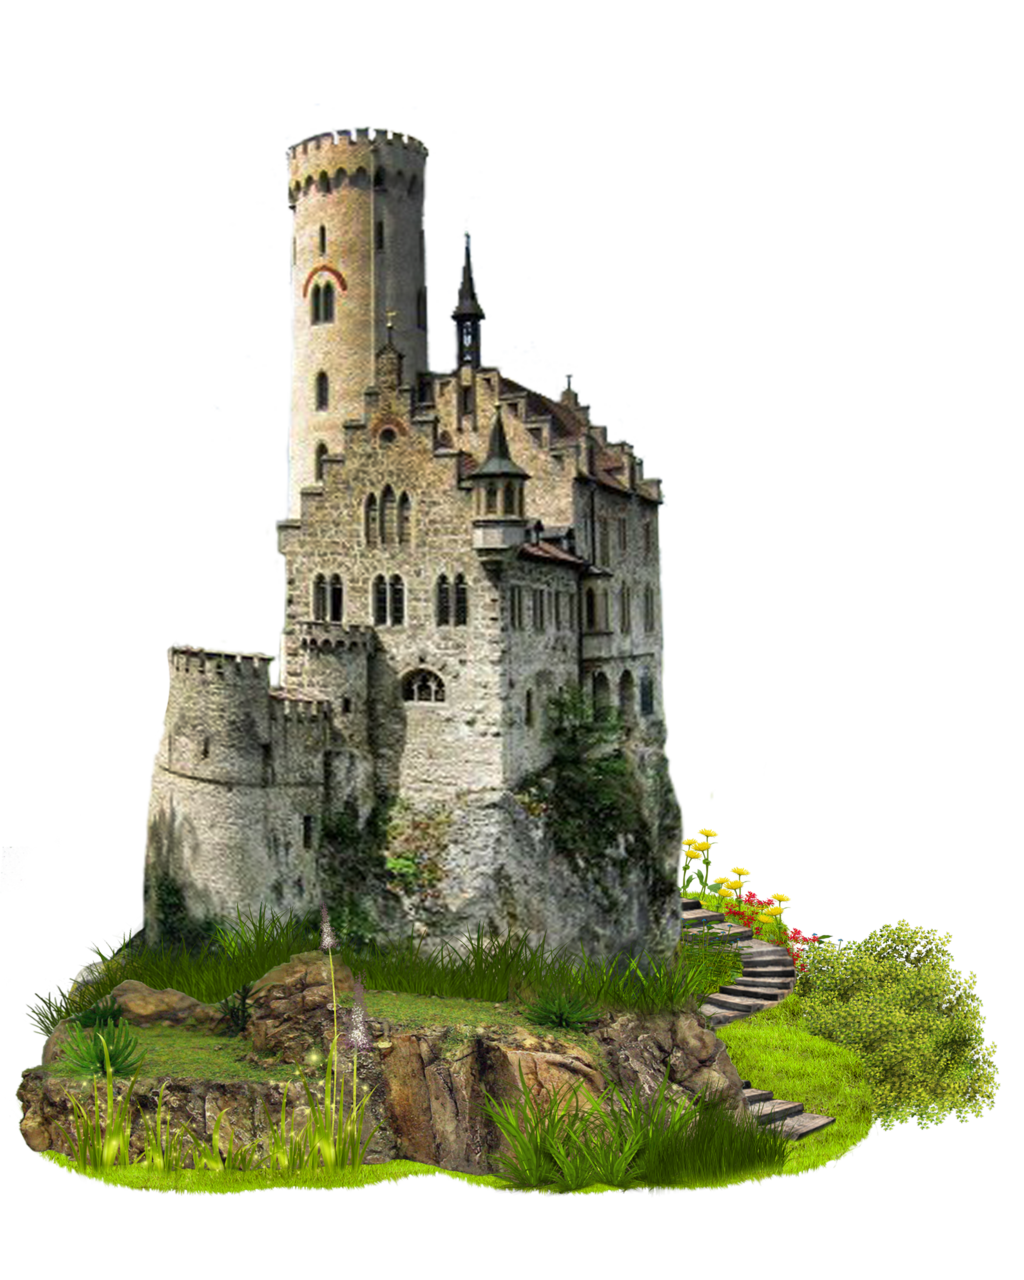 Palace clipart huge castle. Png transparent images pluspng